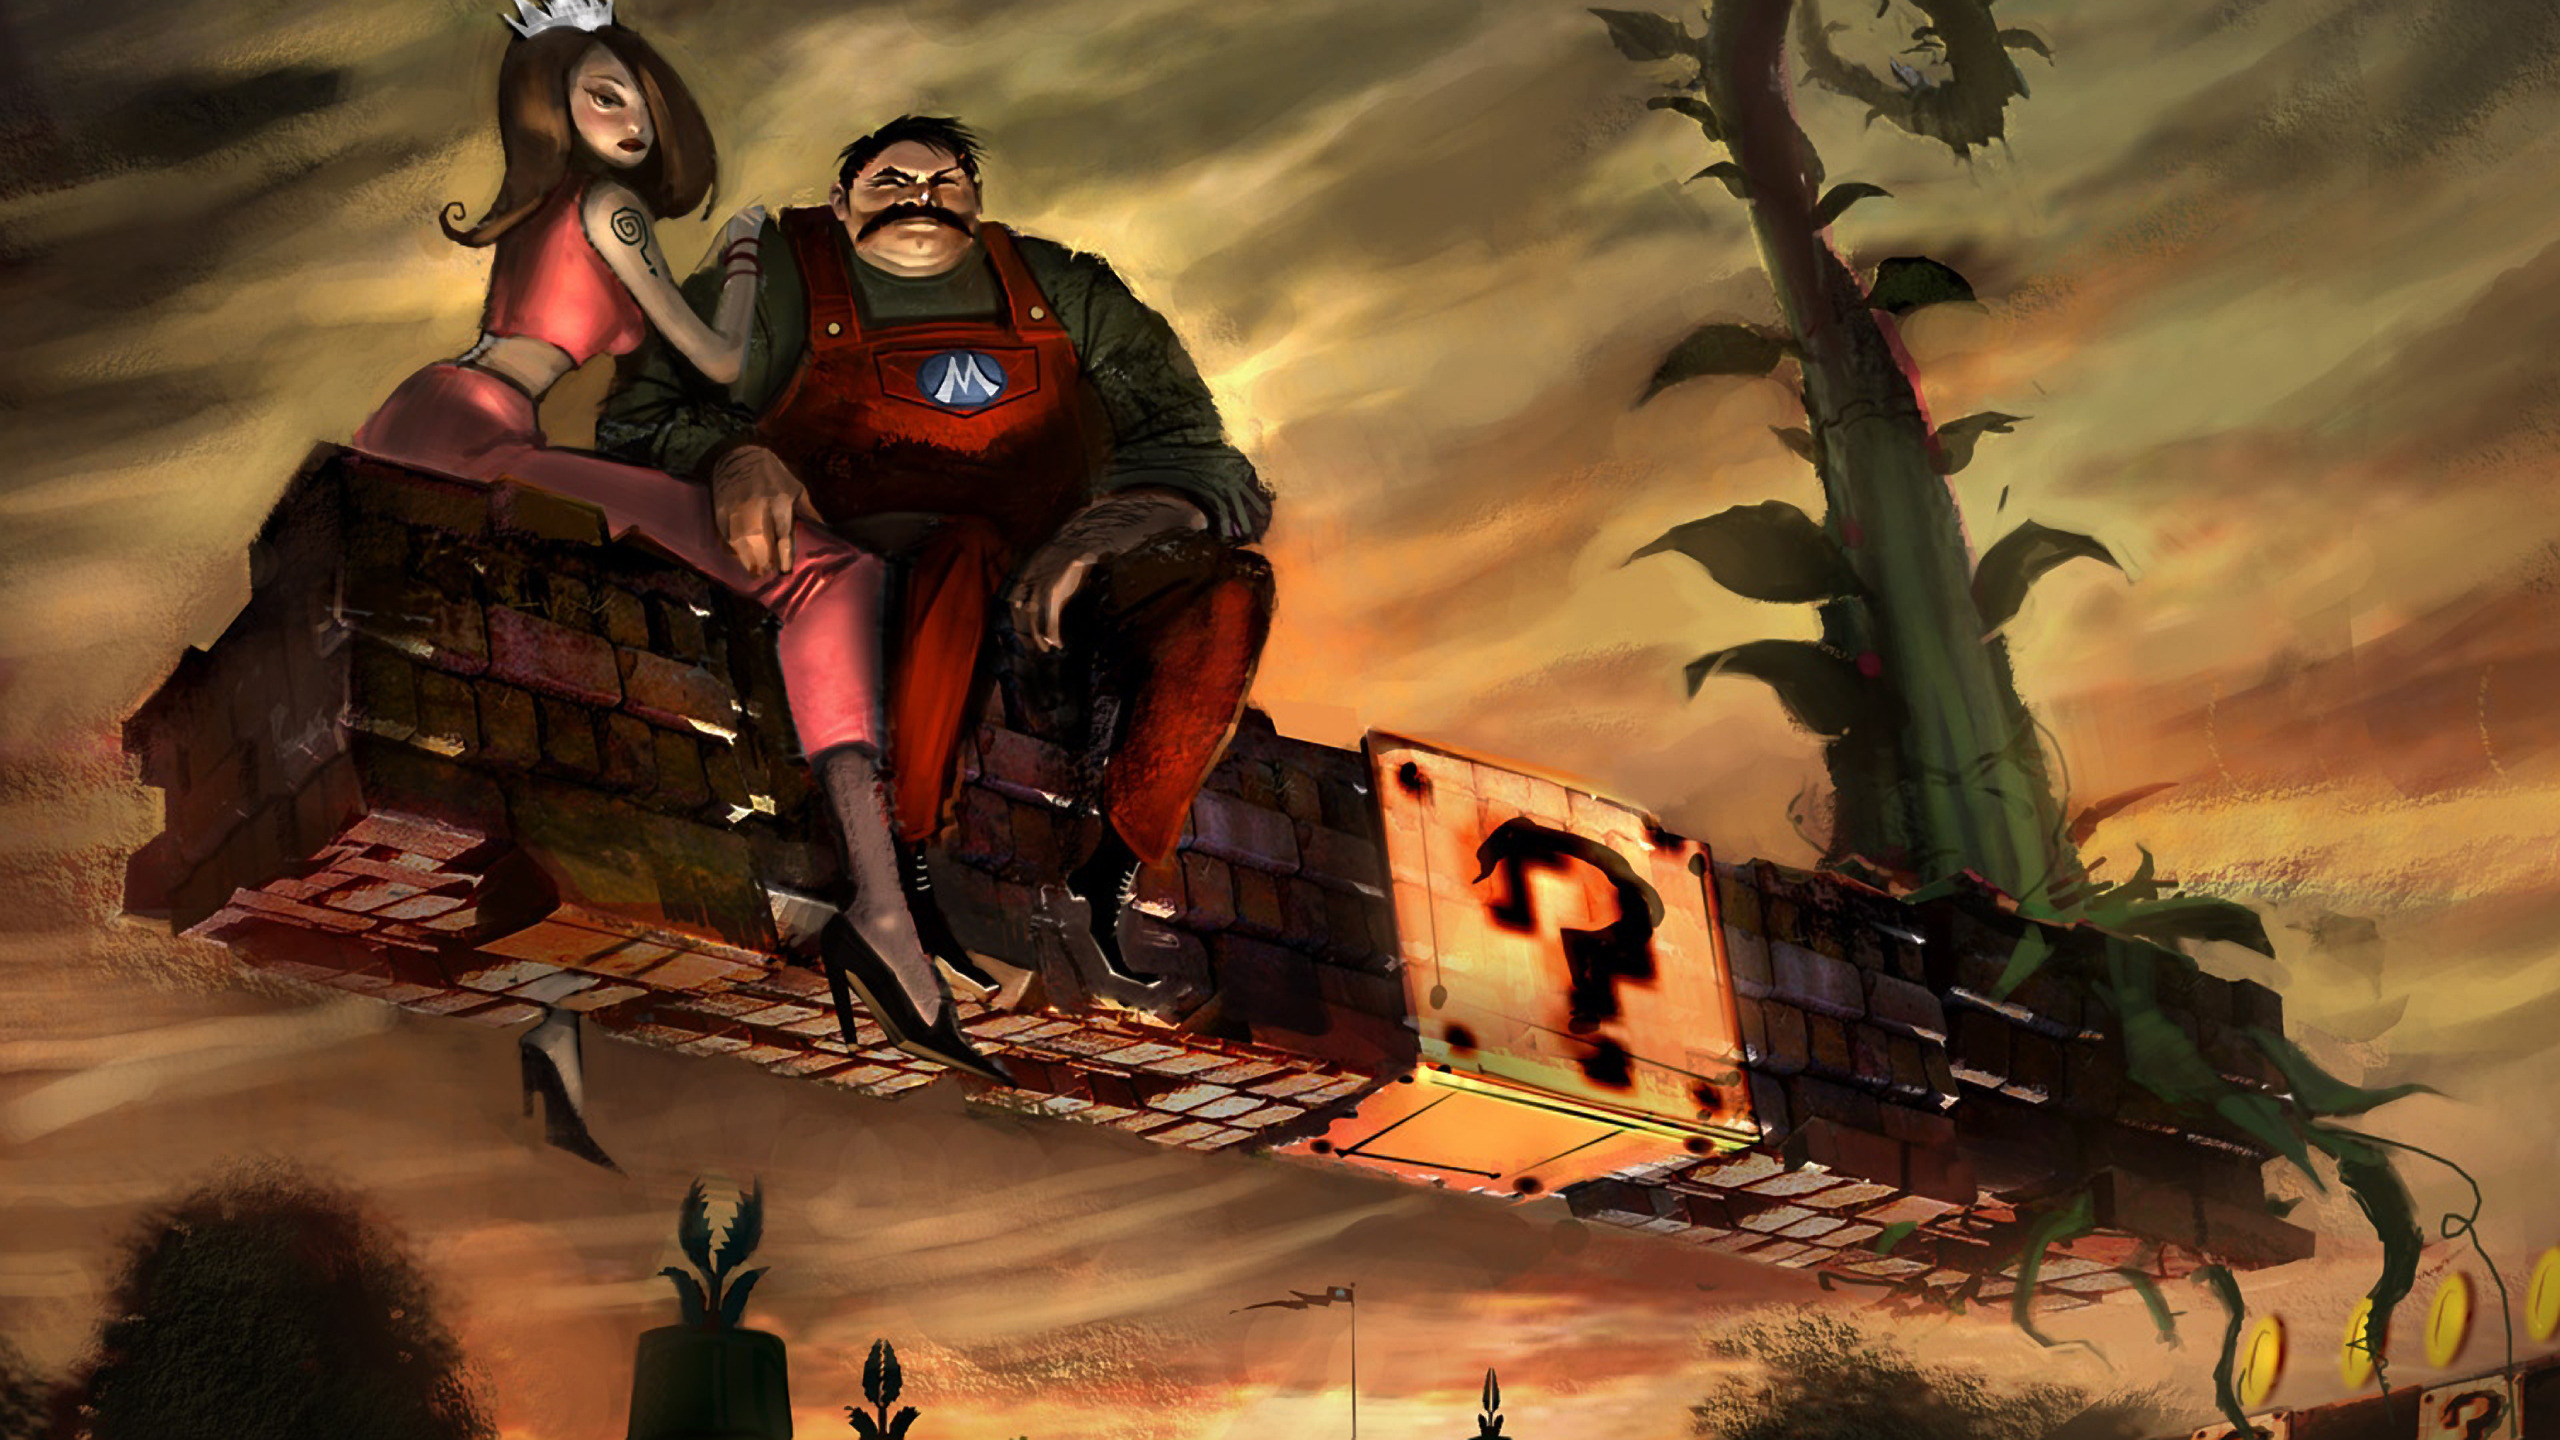 Image: Mario, Princess, mustache, bricks, hanging, plant, sky, art, play, sign, question